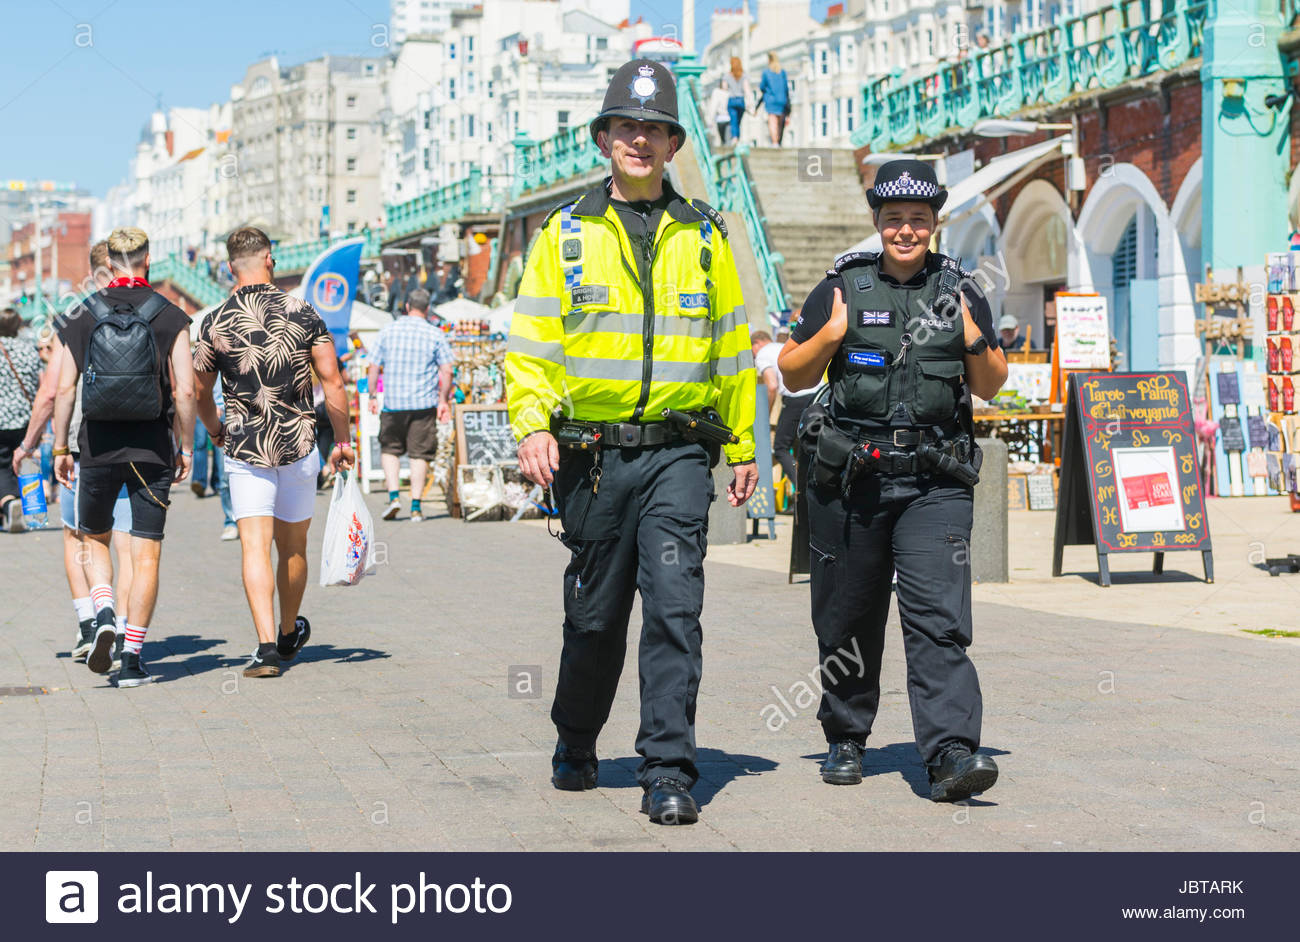 Polizeipräsenz. Polizei patrouillieren Meer promenade im Sommer in Brighton, East Sussex, England, UK. Stockbild